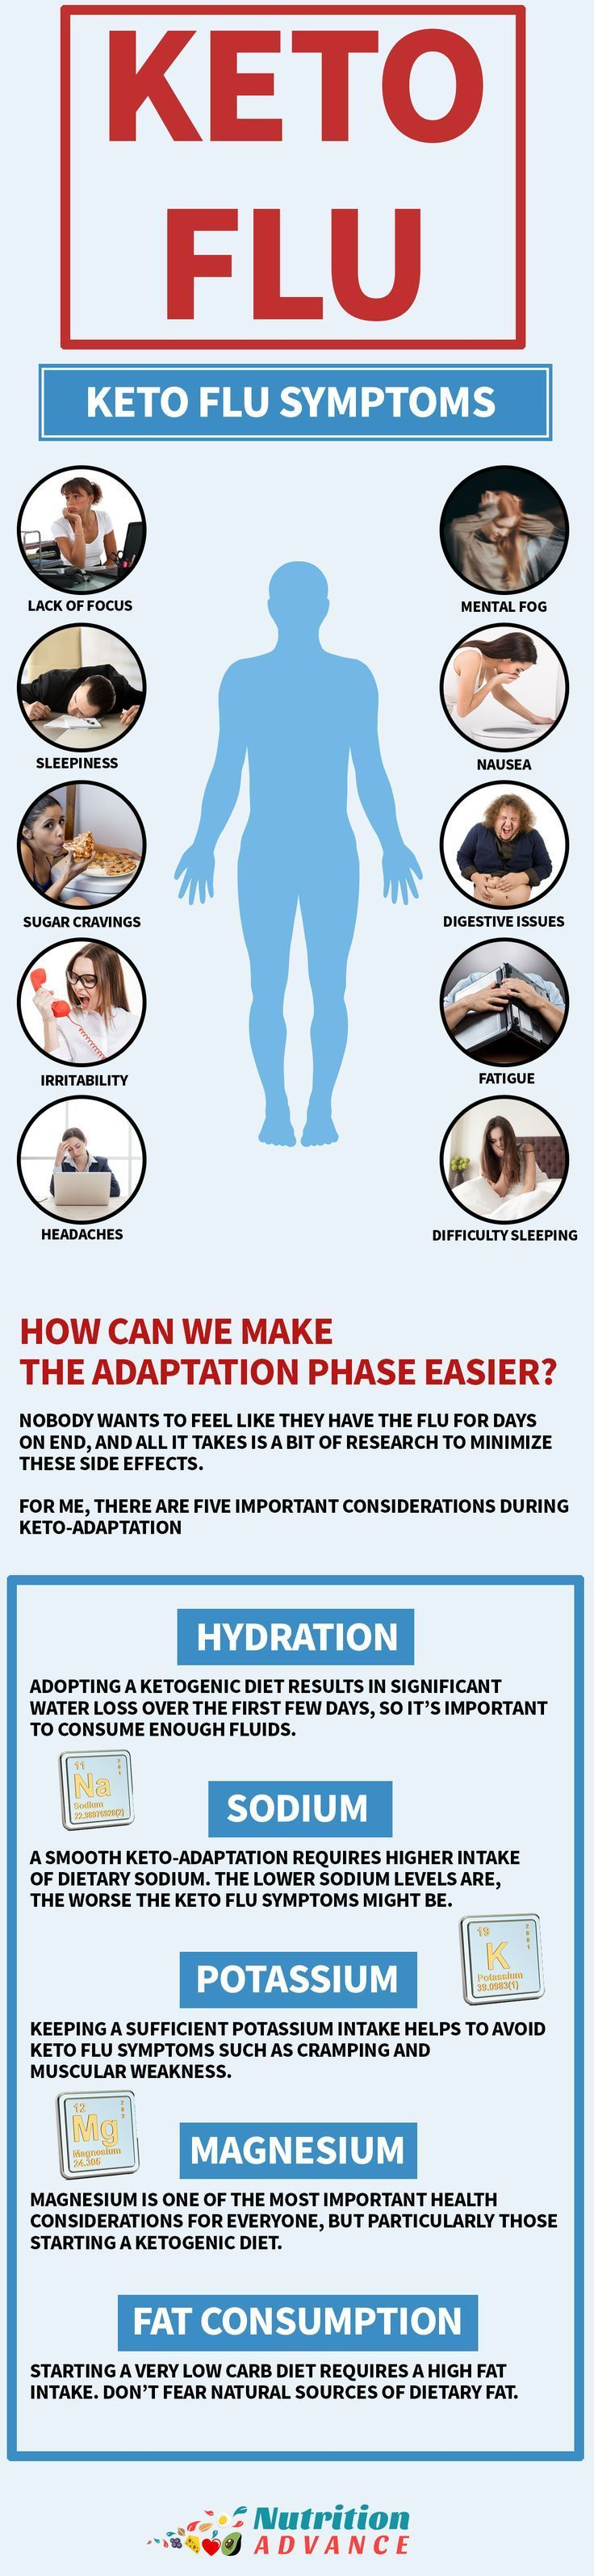 1204 best Keto images on Pinterest | Atkins diet, Cleanses and Diet ...